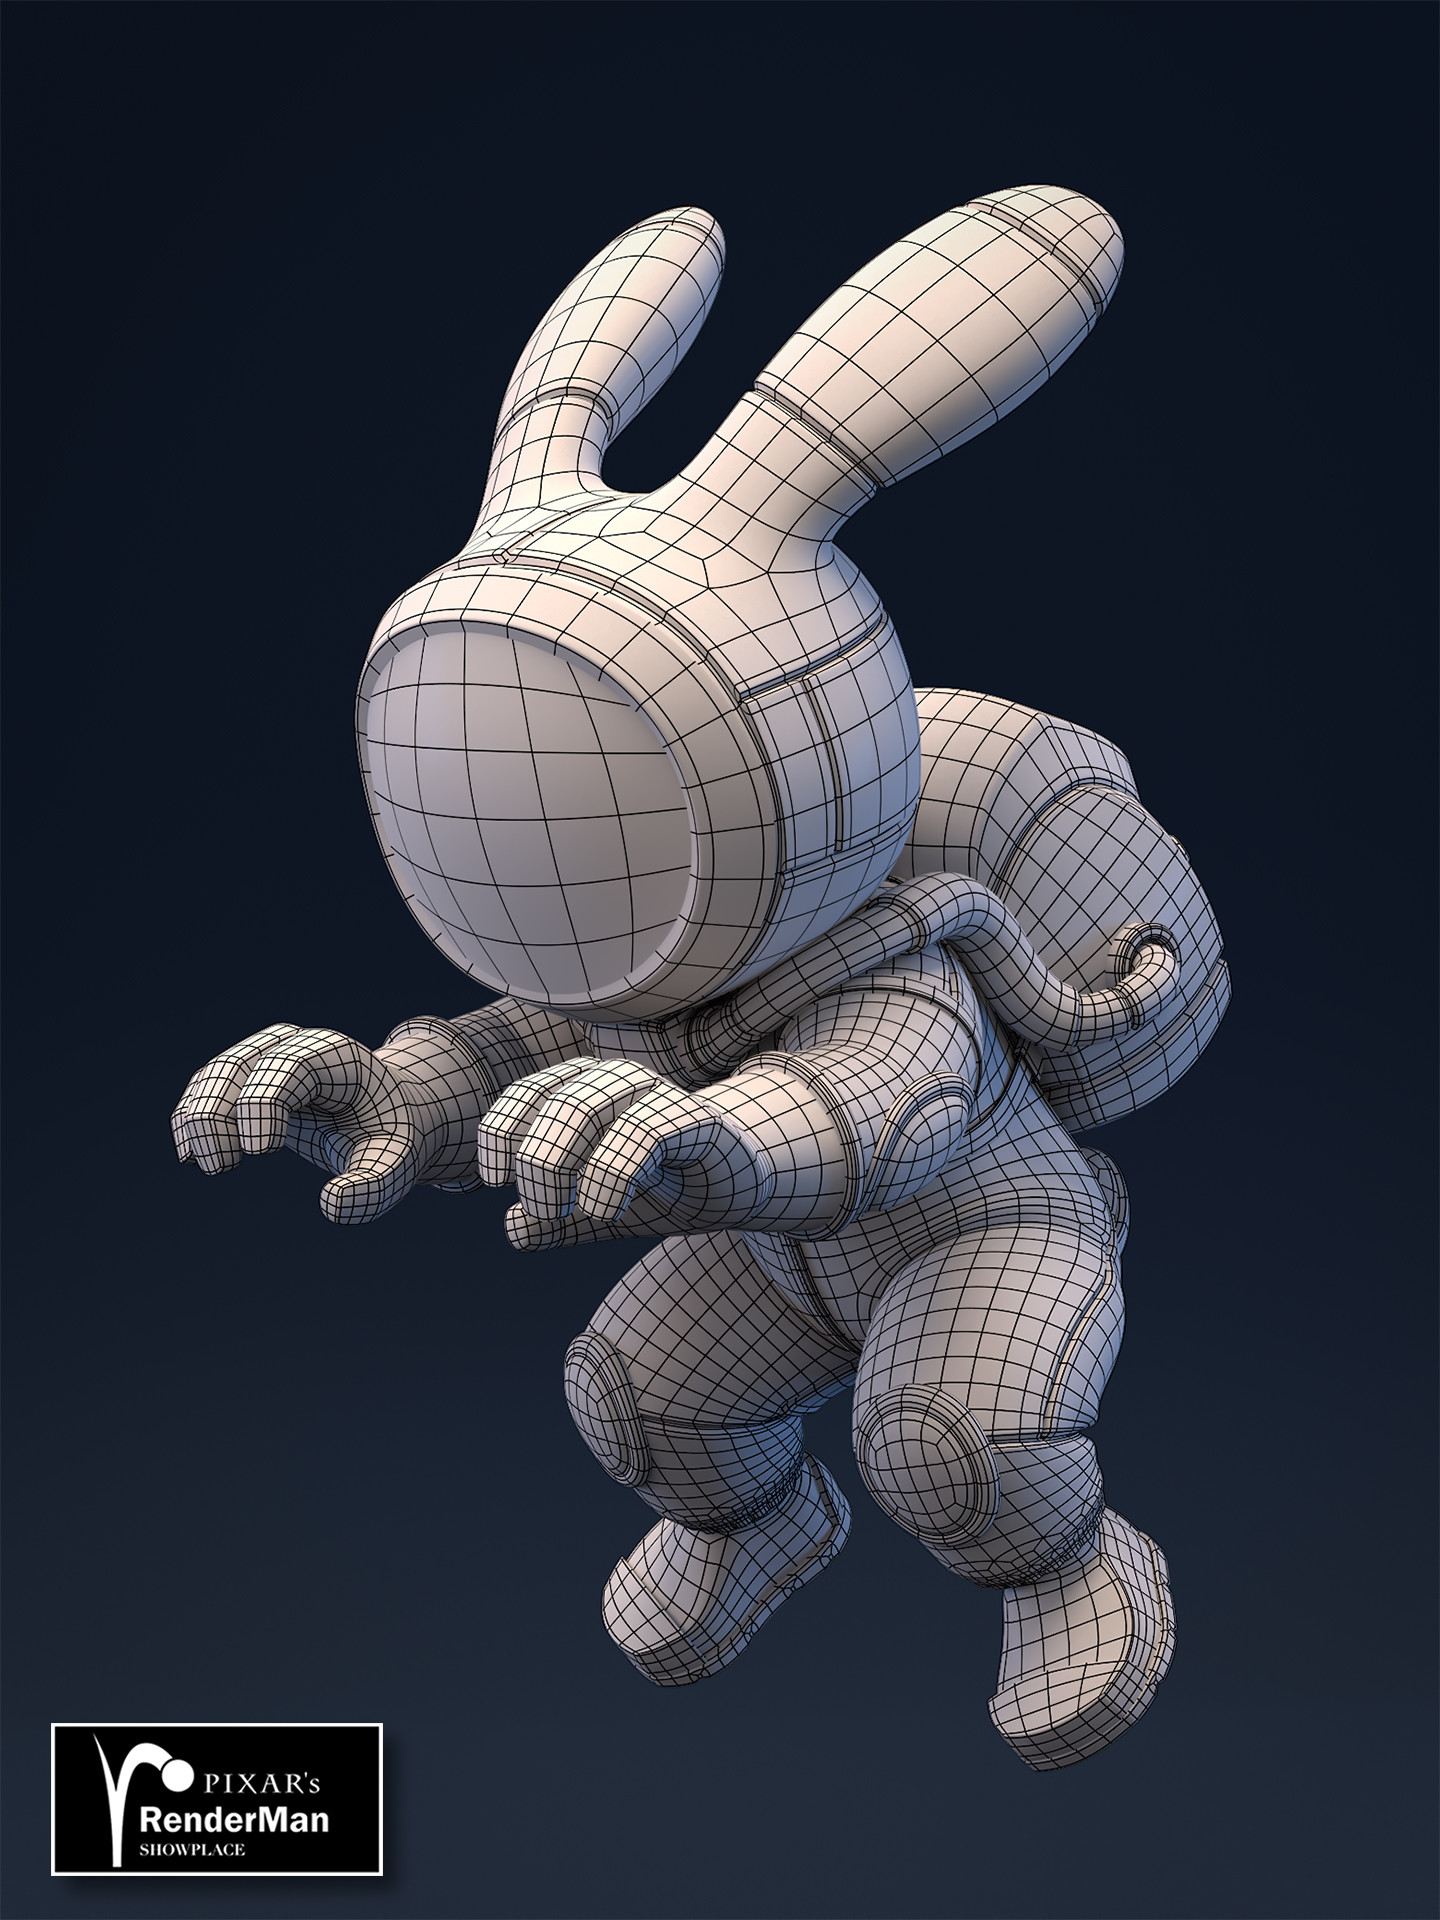 Brice laville saint martin rocket rabbit retopo wire awards 01